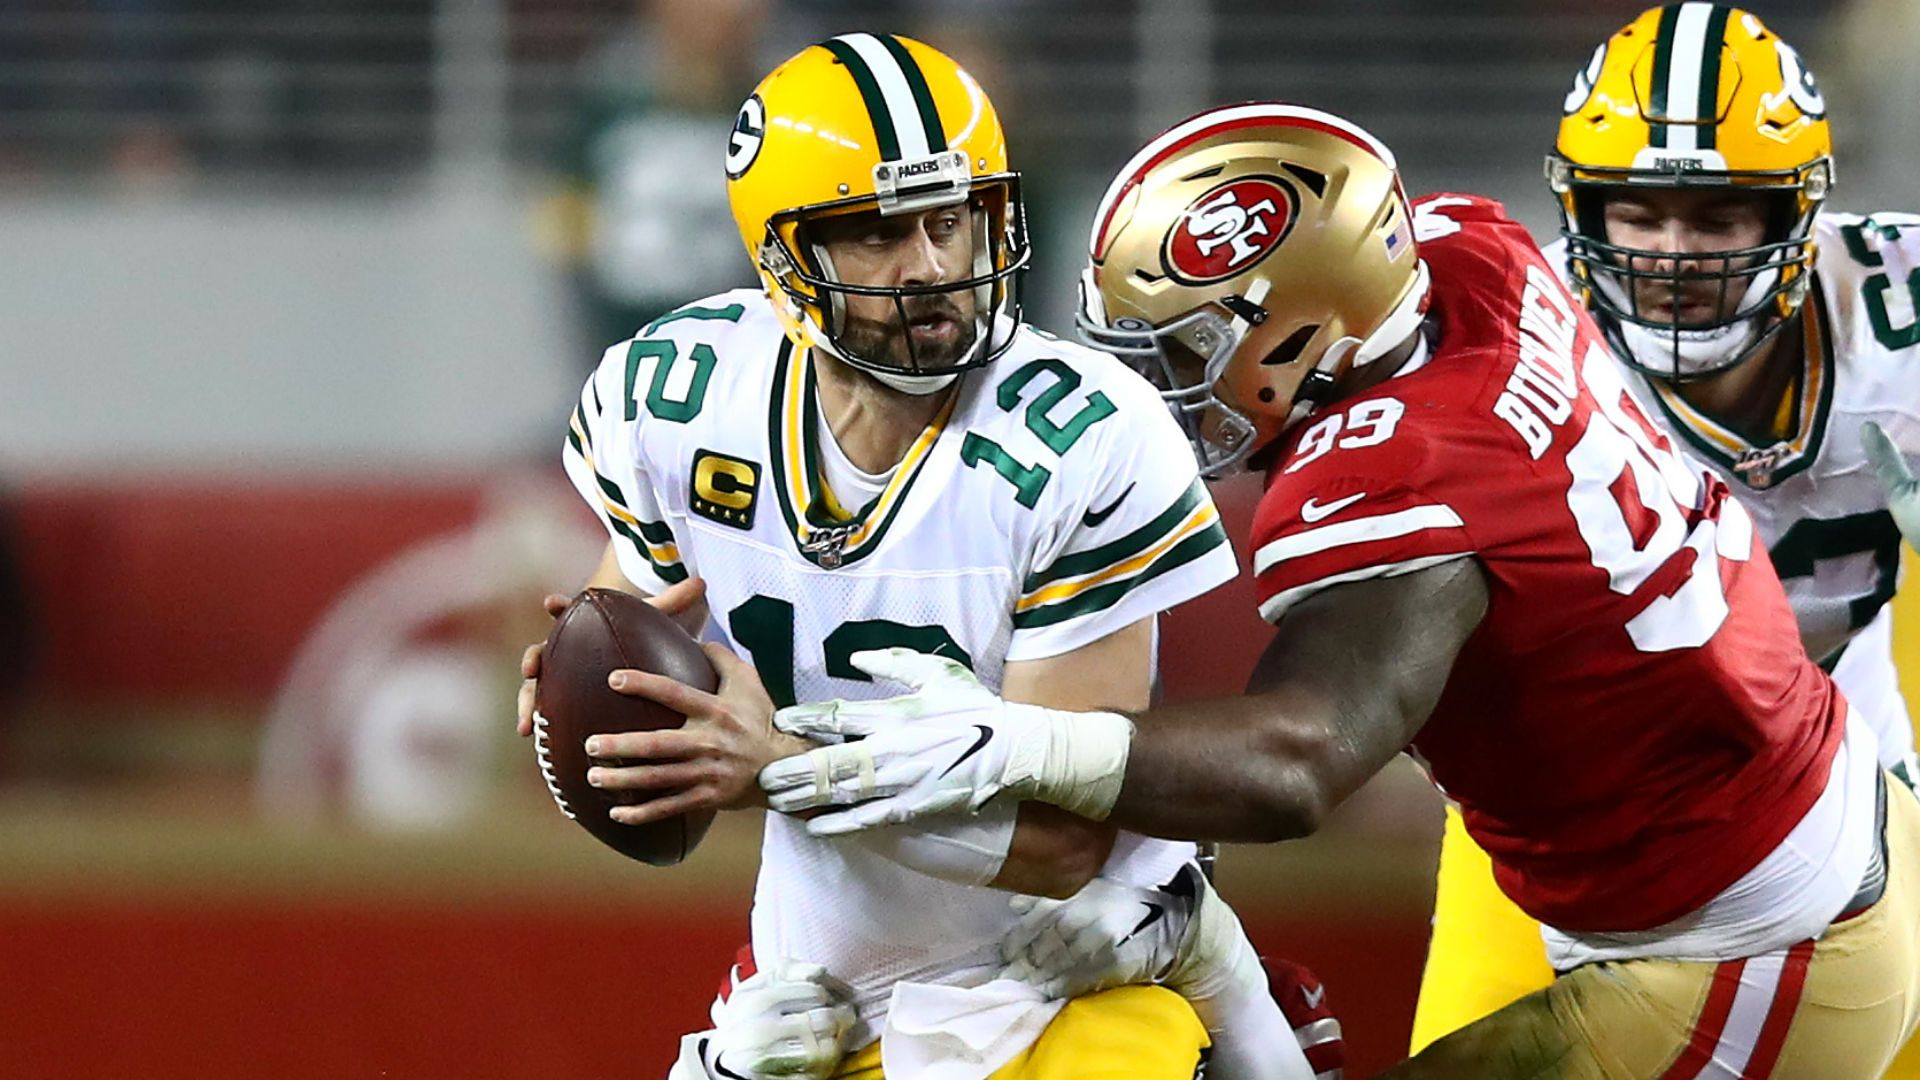 Aaron Rodgers Packers Did 4 Things Vs Seahawks They Must Do Again To Upset 49ers For Nfc Championship N In 2020 National Football League National Football Nfl News